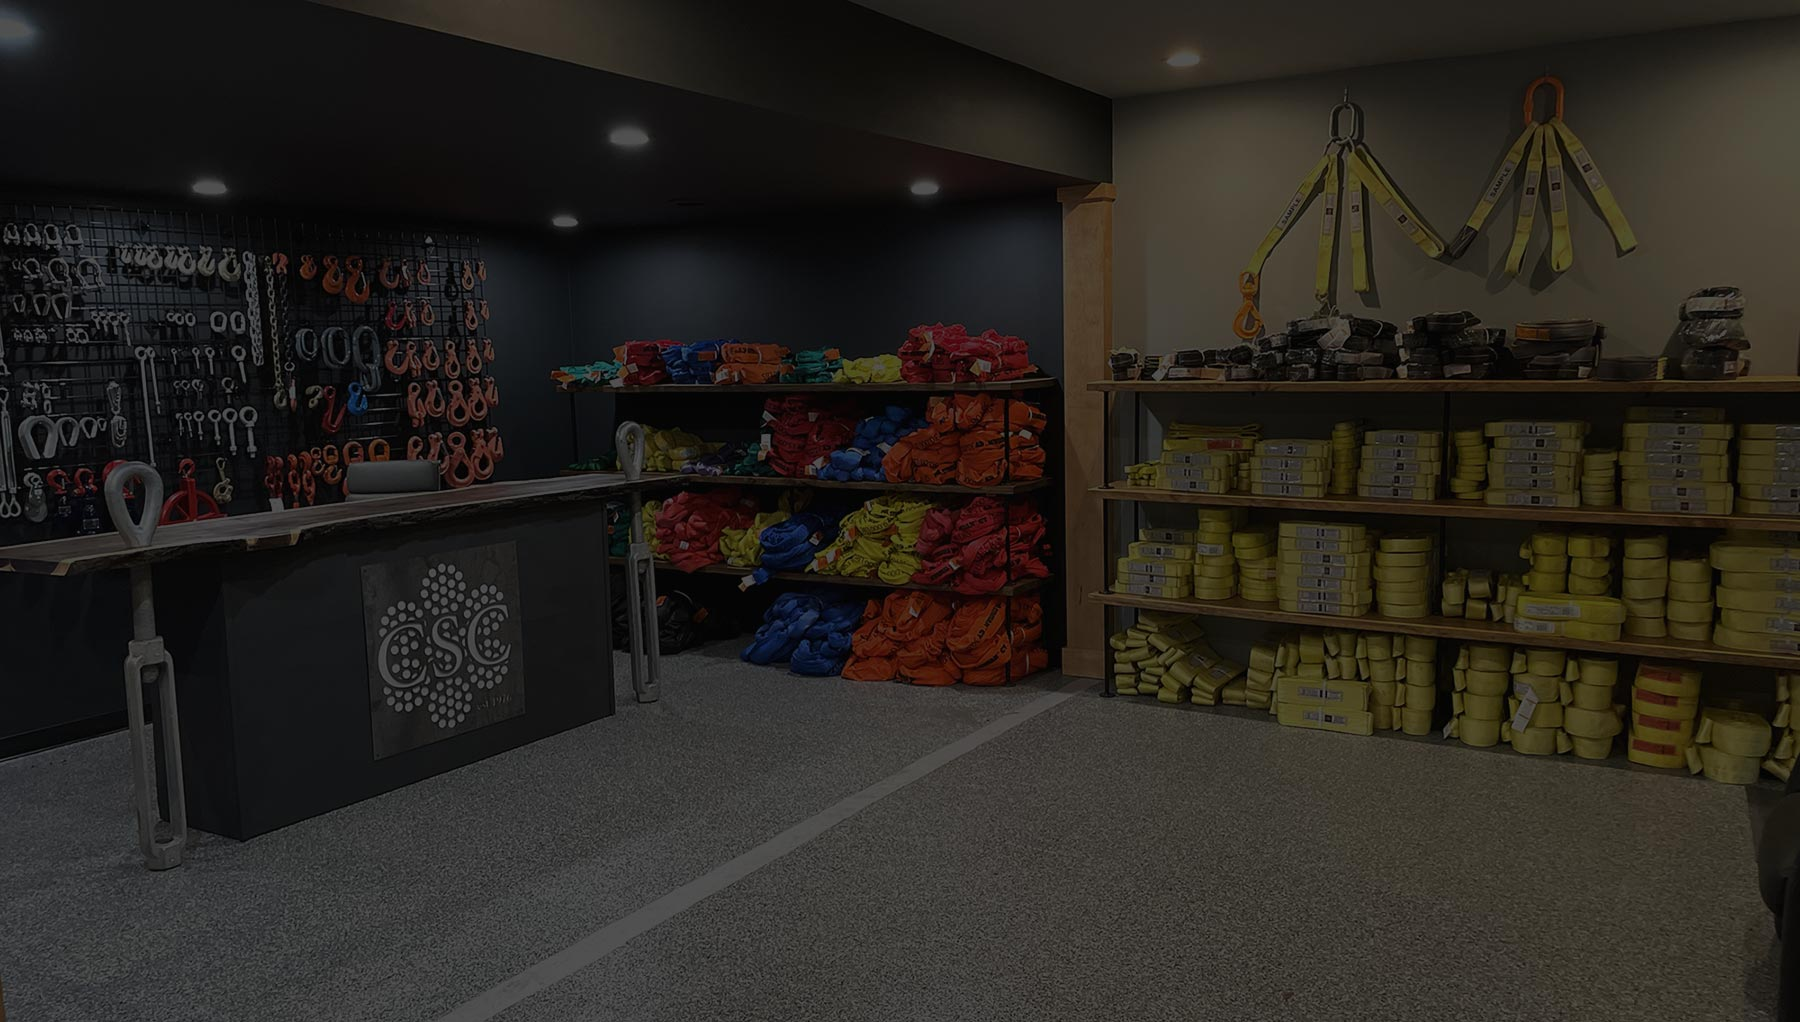 Showroom with chains, hooks, straps, links, and slings